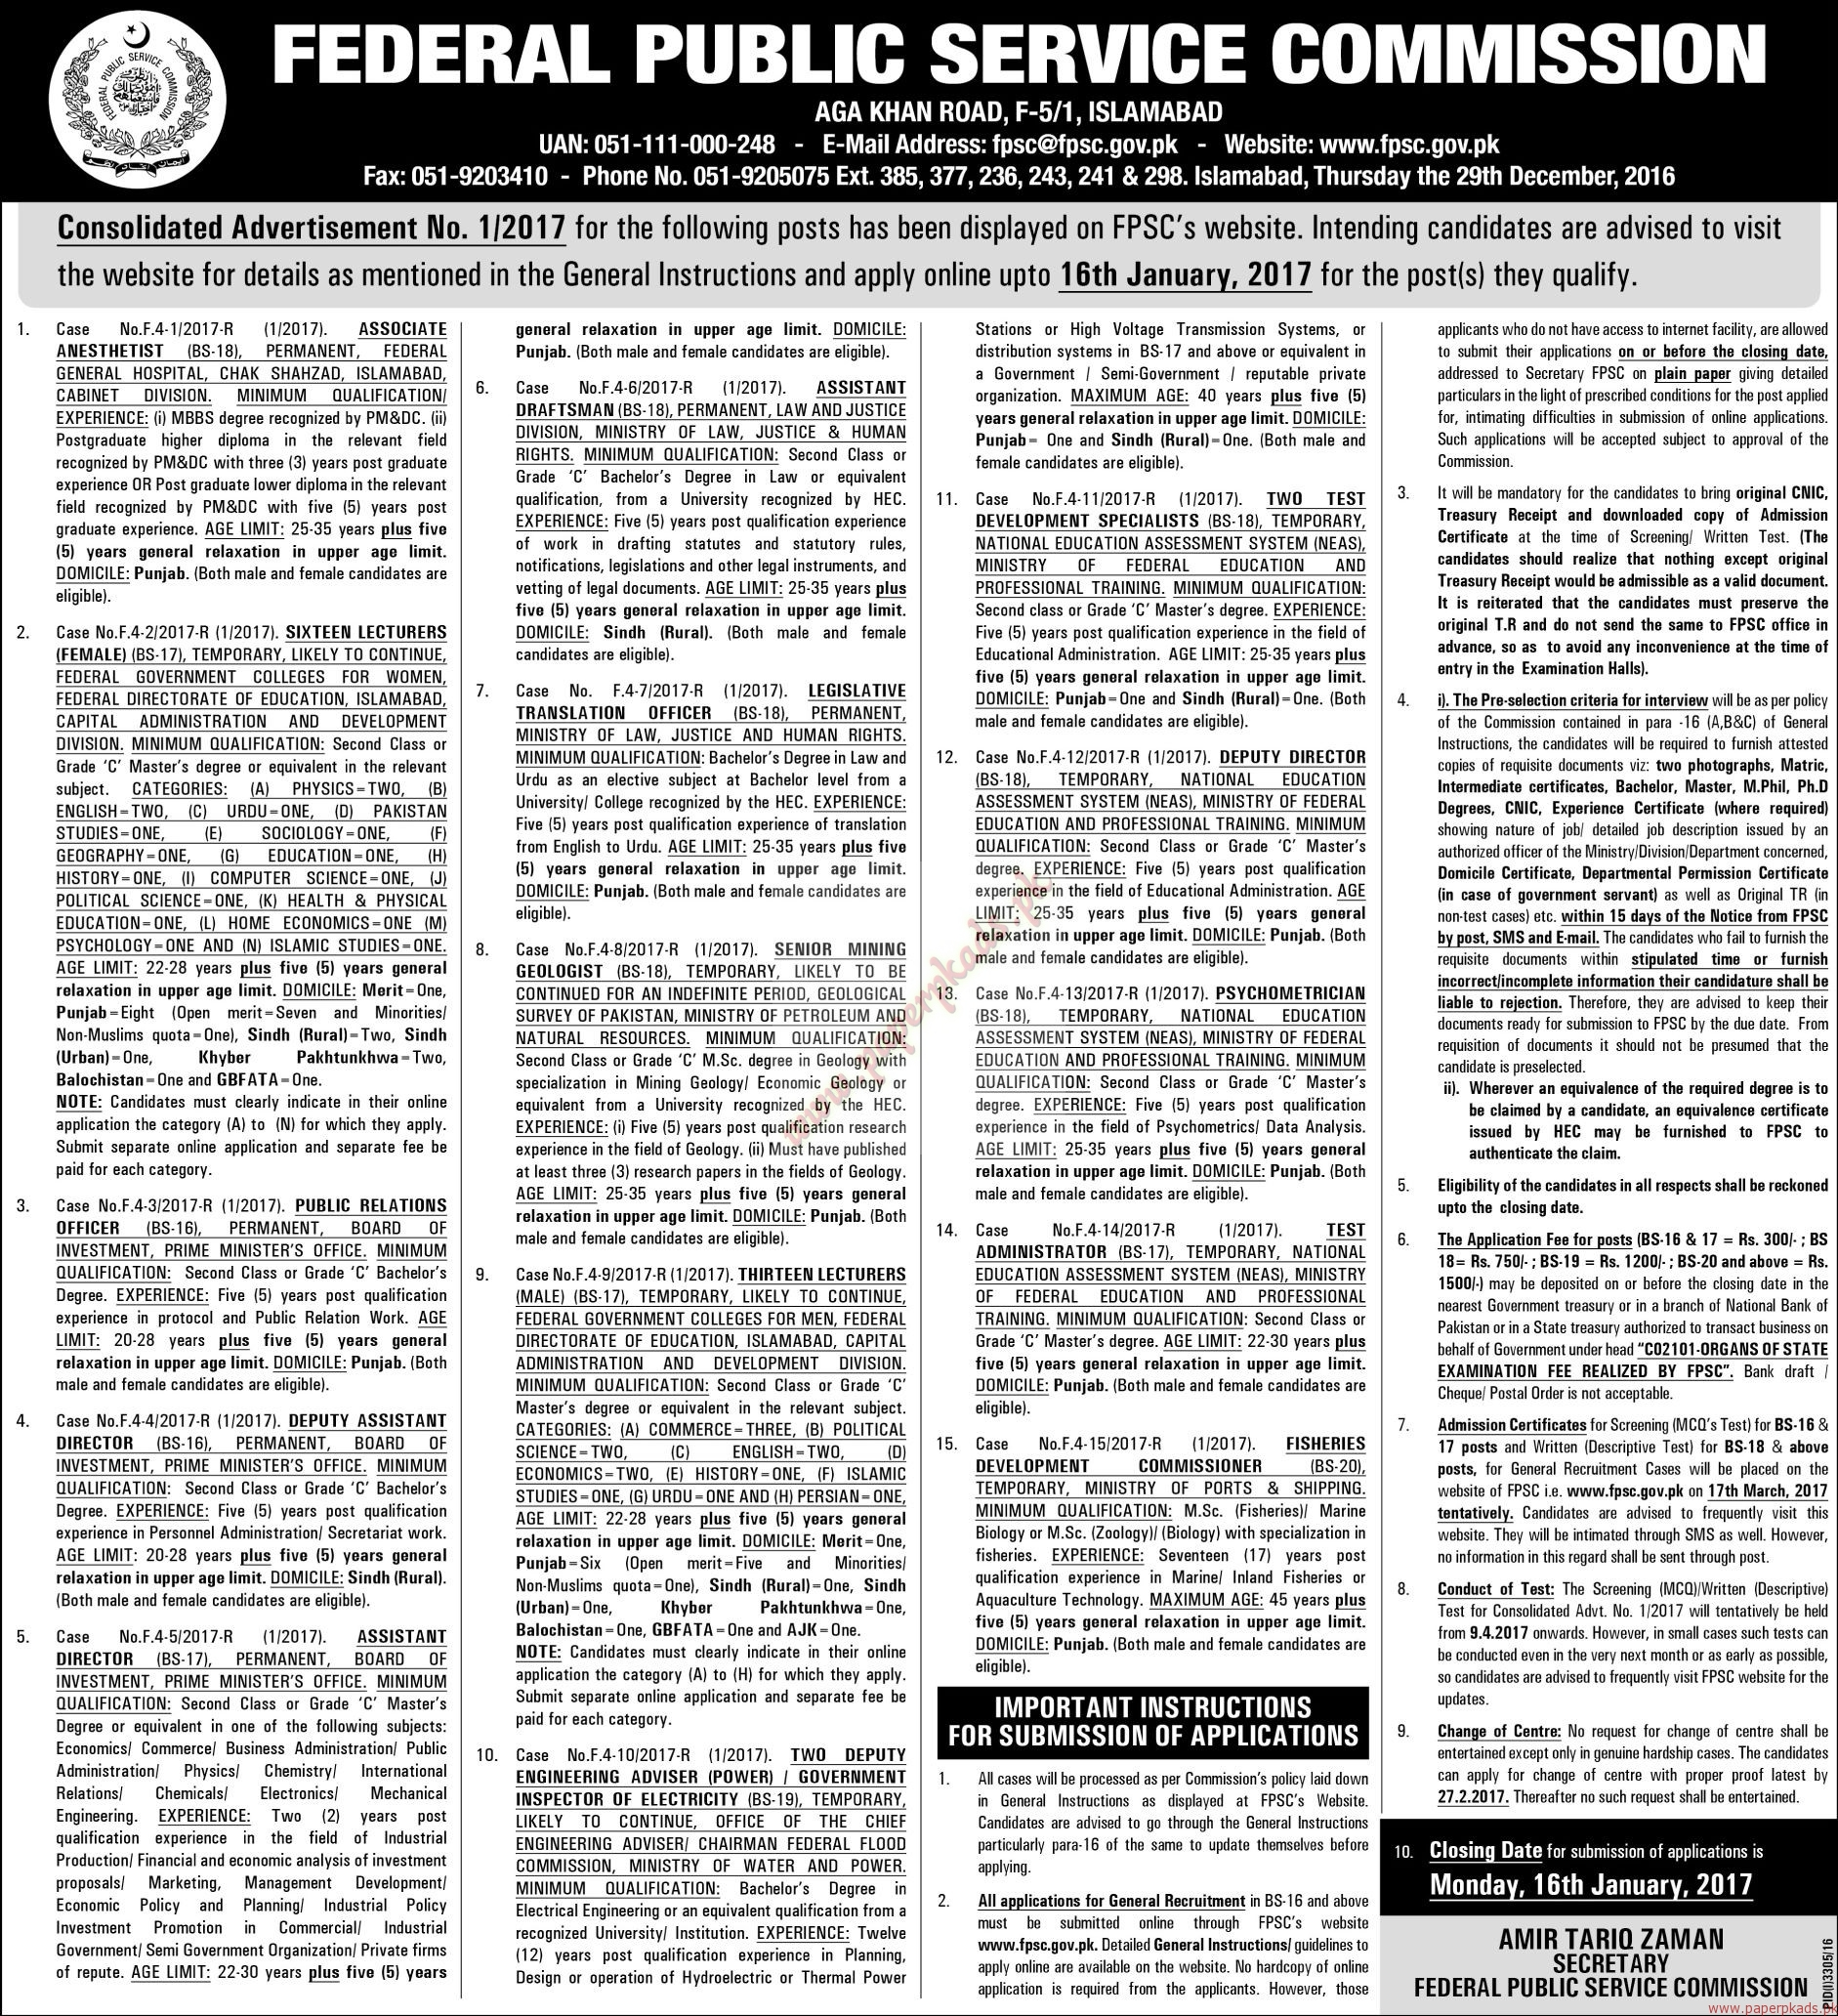 Federal Public Service Commission Jobs - The News Jobs ads 01 January 2017